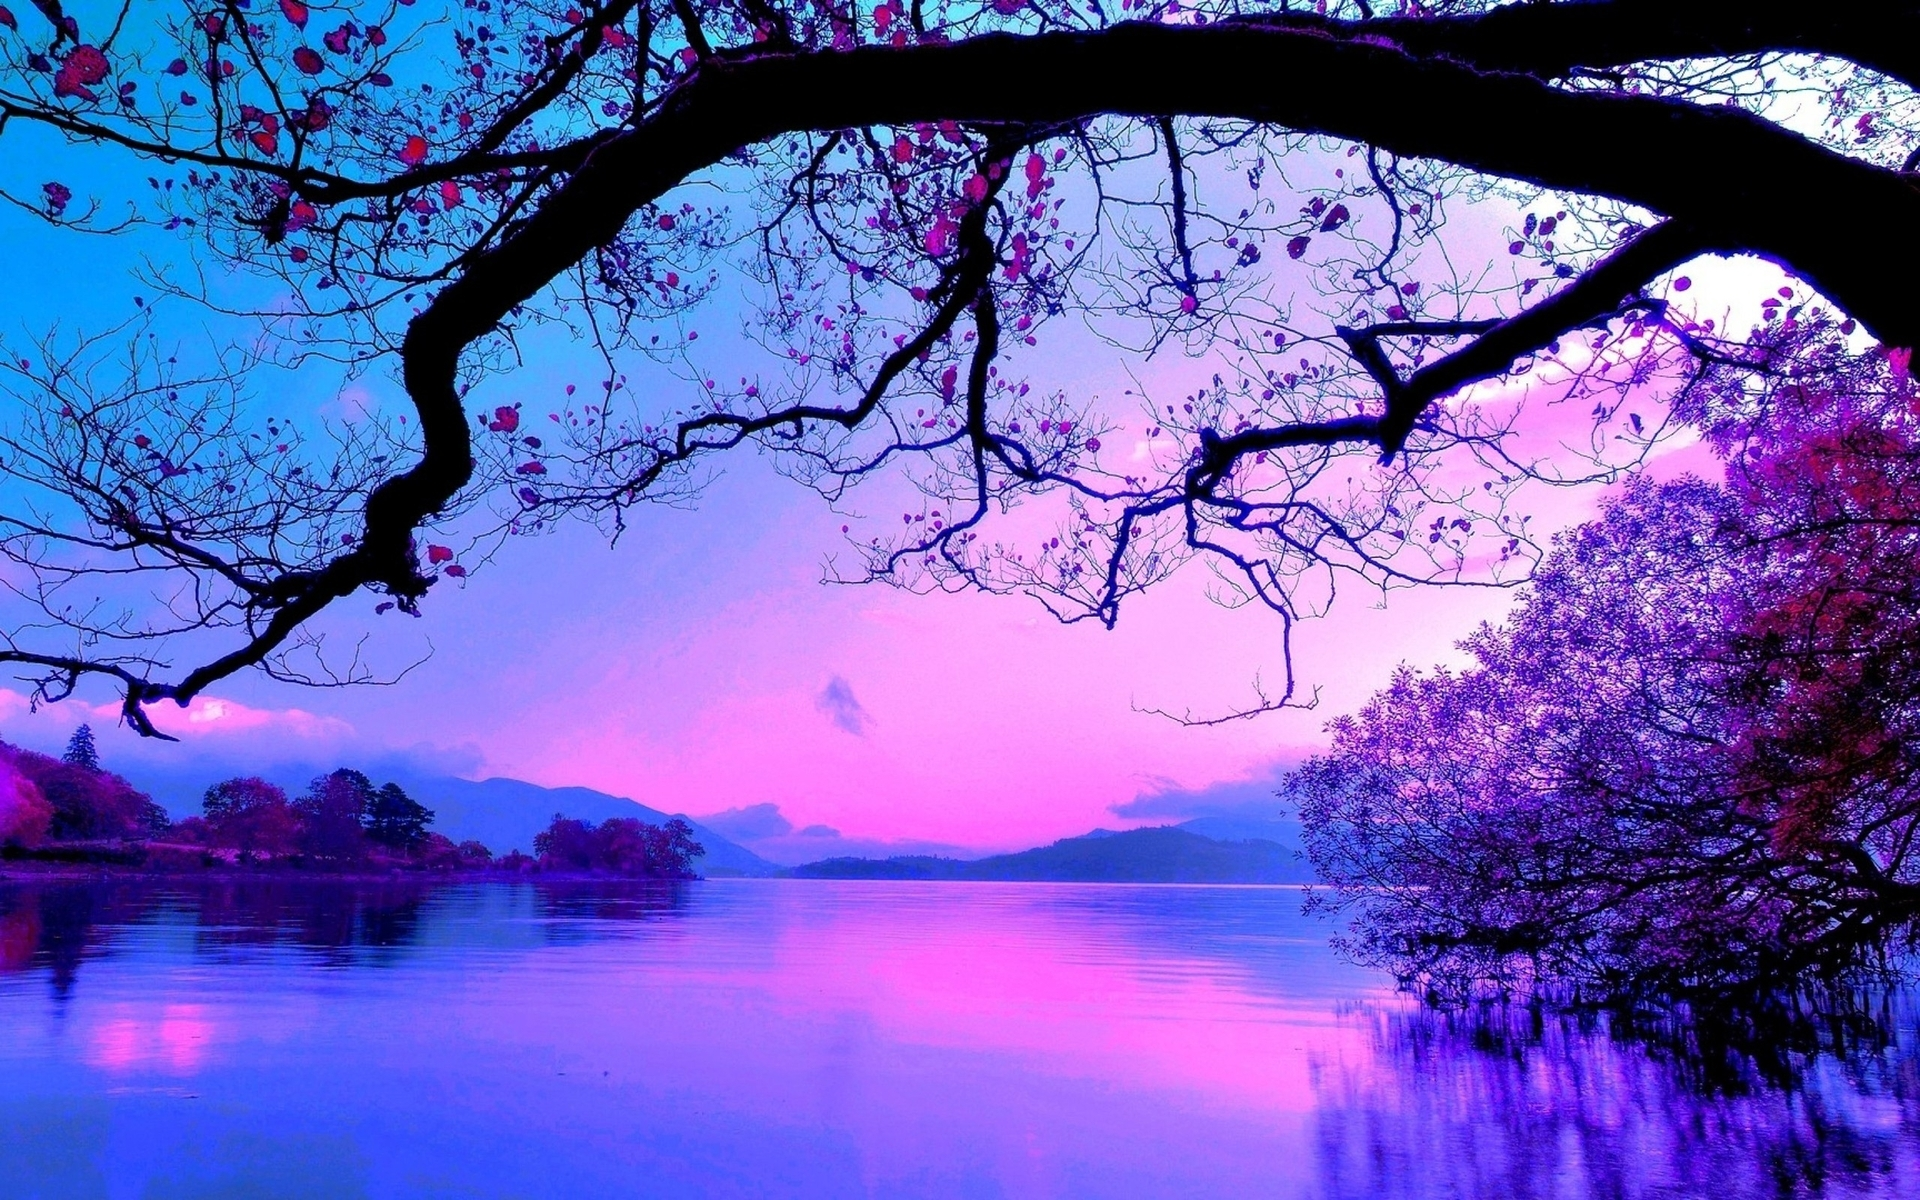 purple-sunset-8782-1920x1200 wallpaper